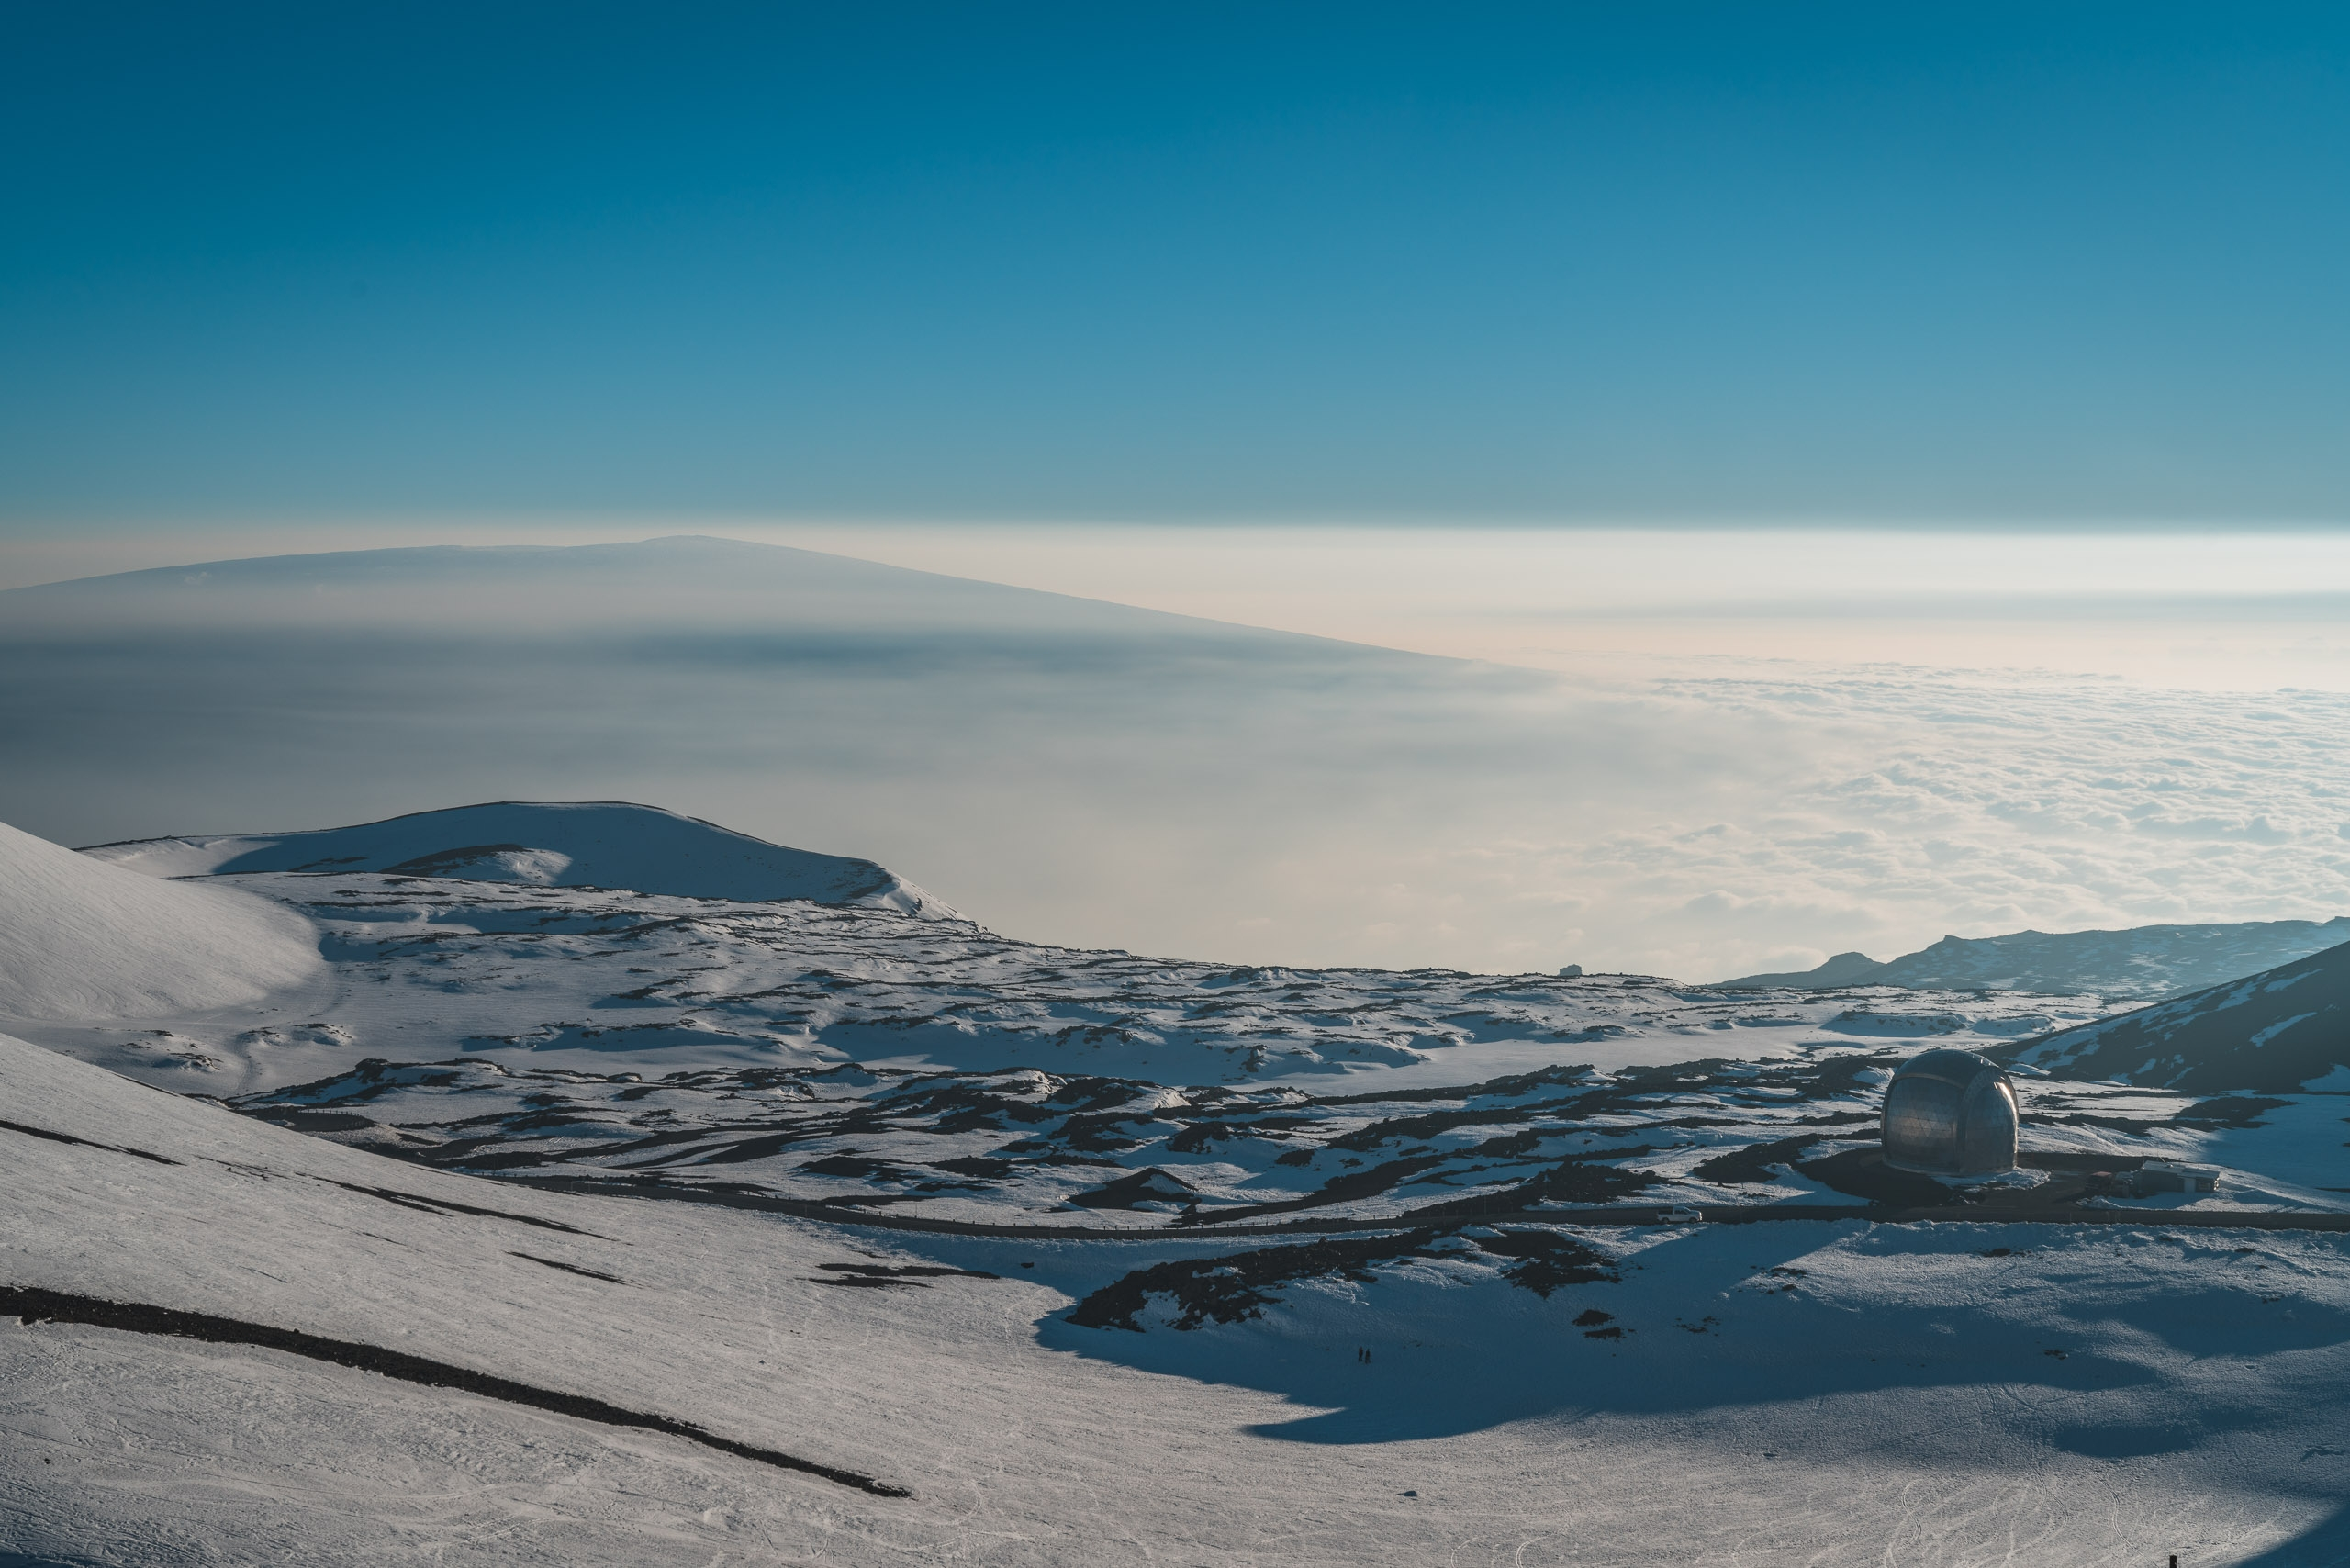 The Snows of Mauna Kea